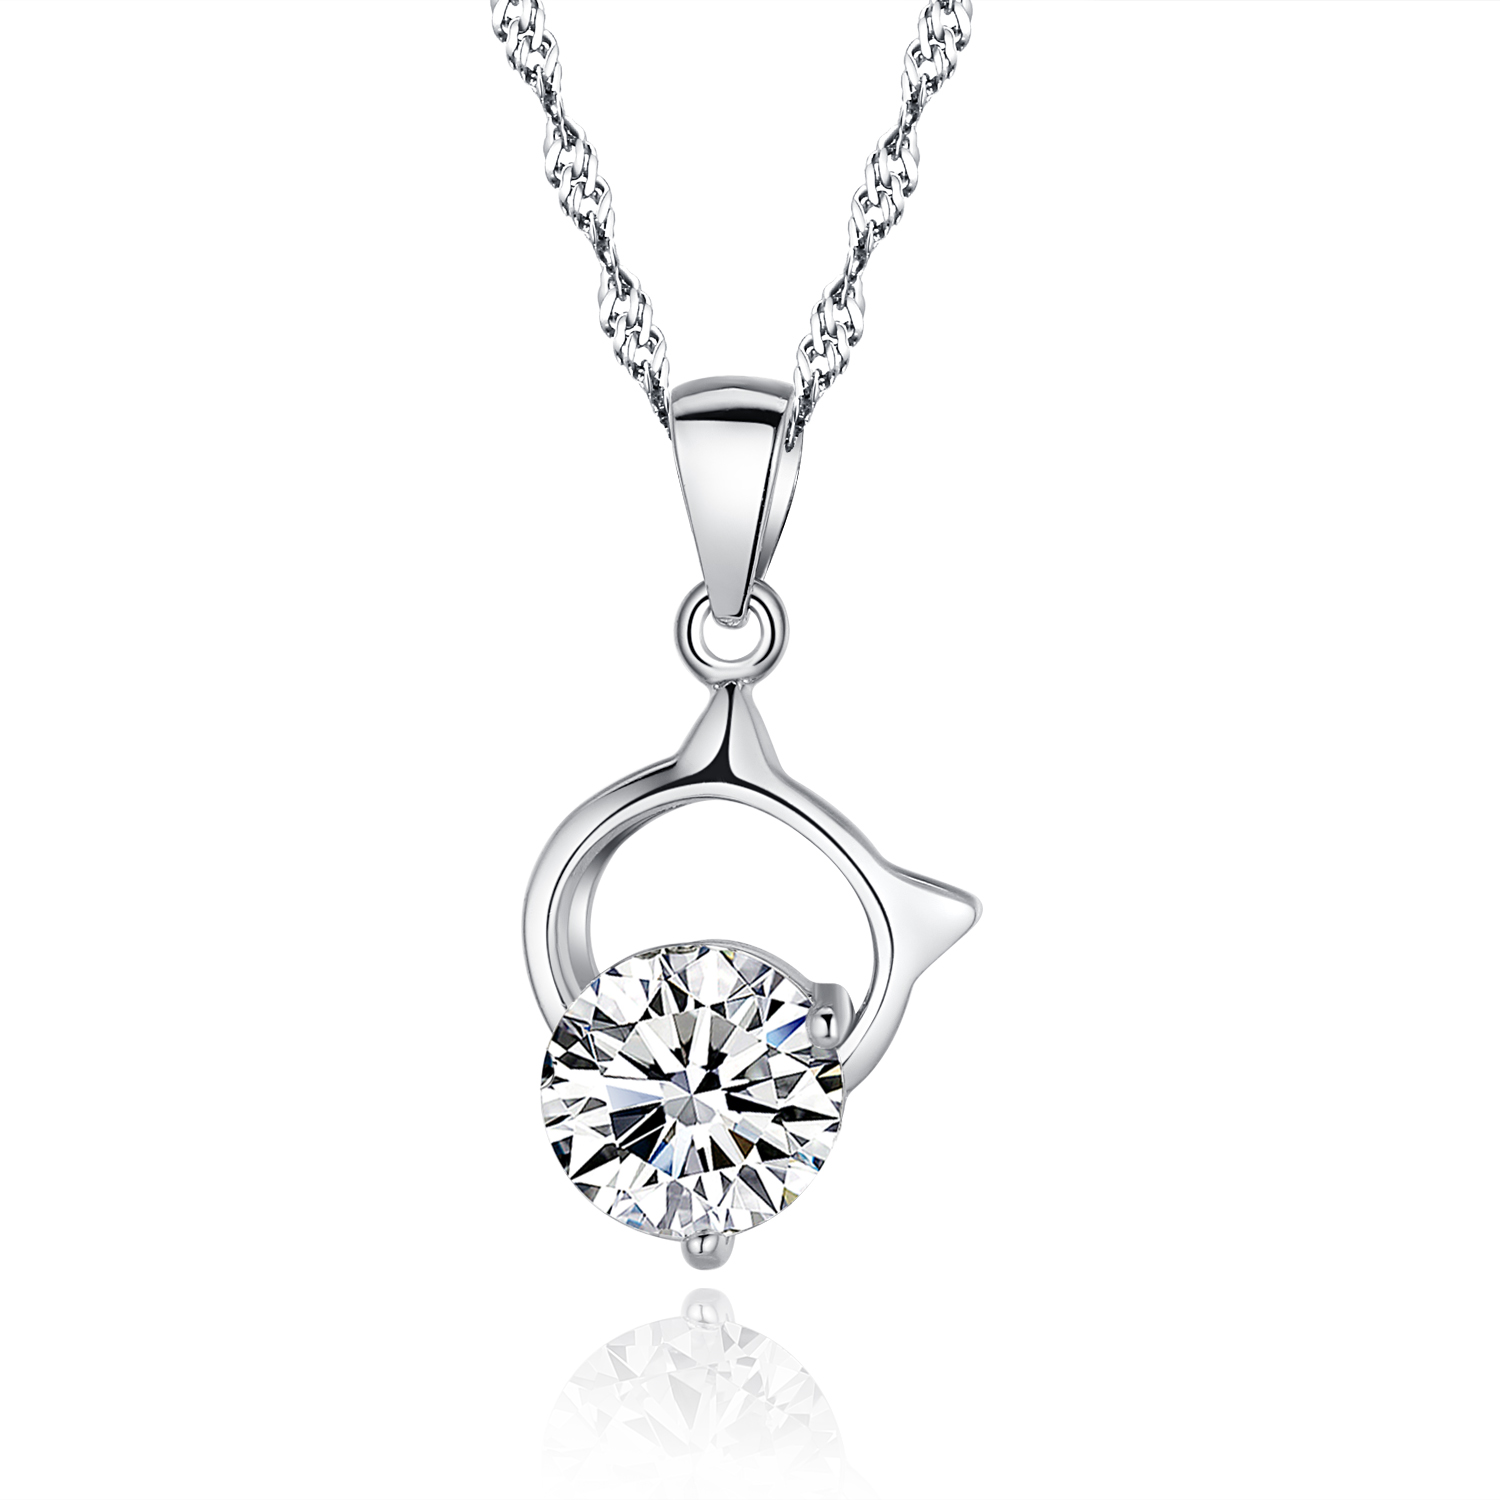 Sterling 925 silver pendant necklace jewelry set with kitty cat head sterling 925 silver pendant necklace jewelry set with kitty cat head pendentif paved cubic zirconia cz aloadofball Gallery